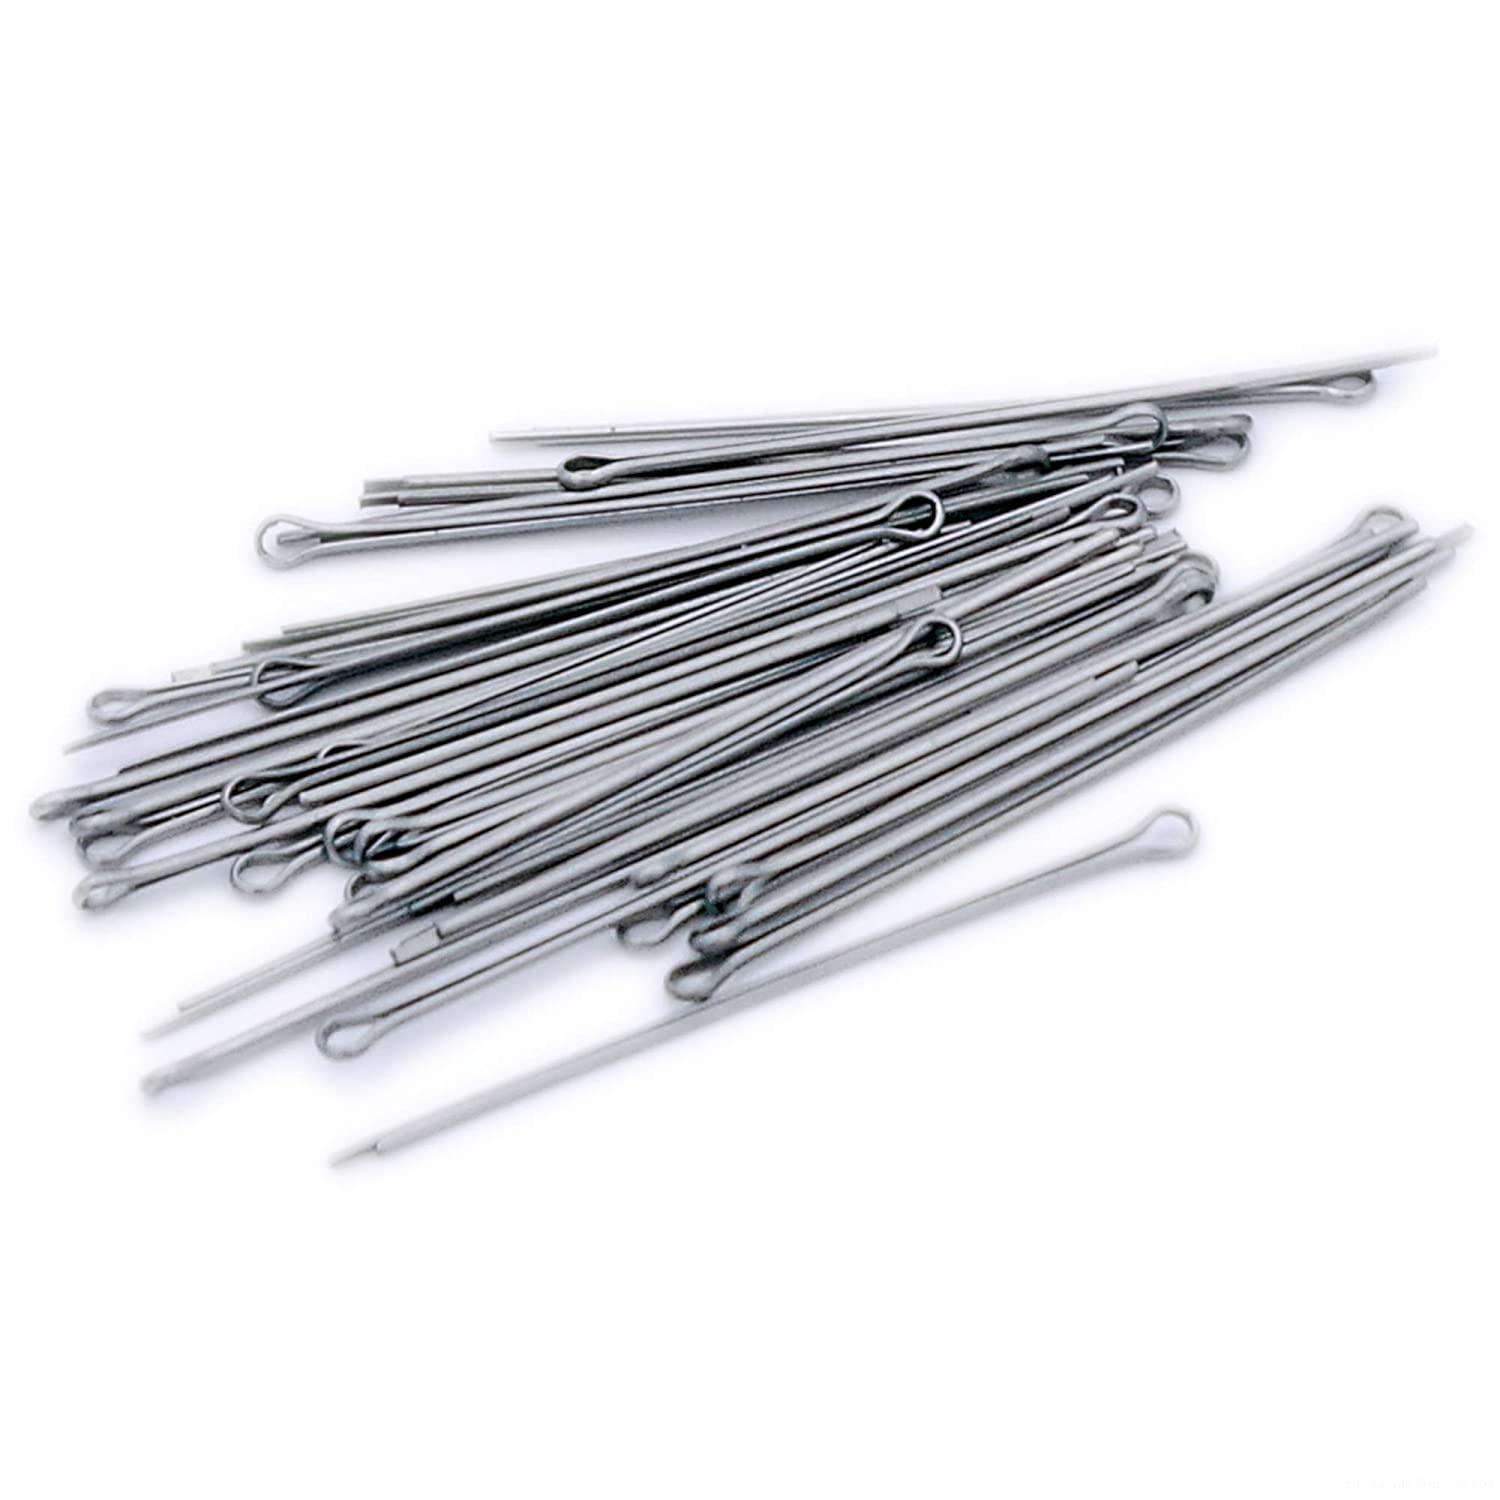 1mm x 16mm Split Cotter Pins - Stainless Steel (A2) (Pack of 40) Singularity Supplies Ltd